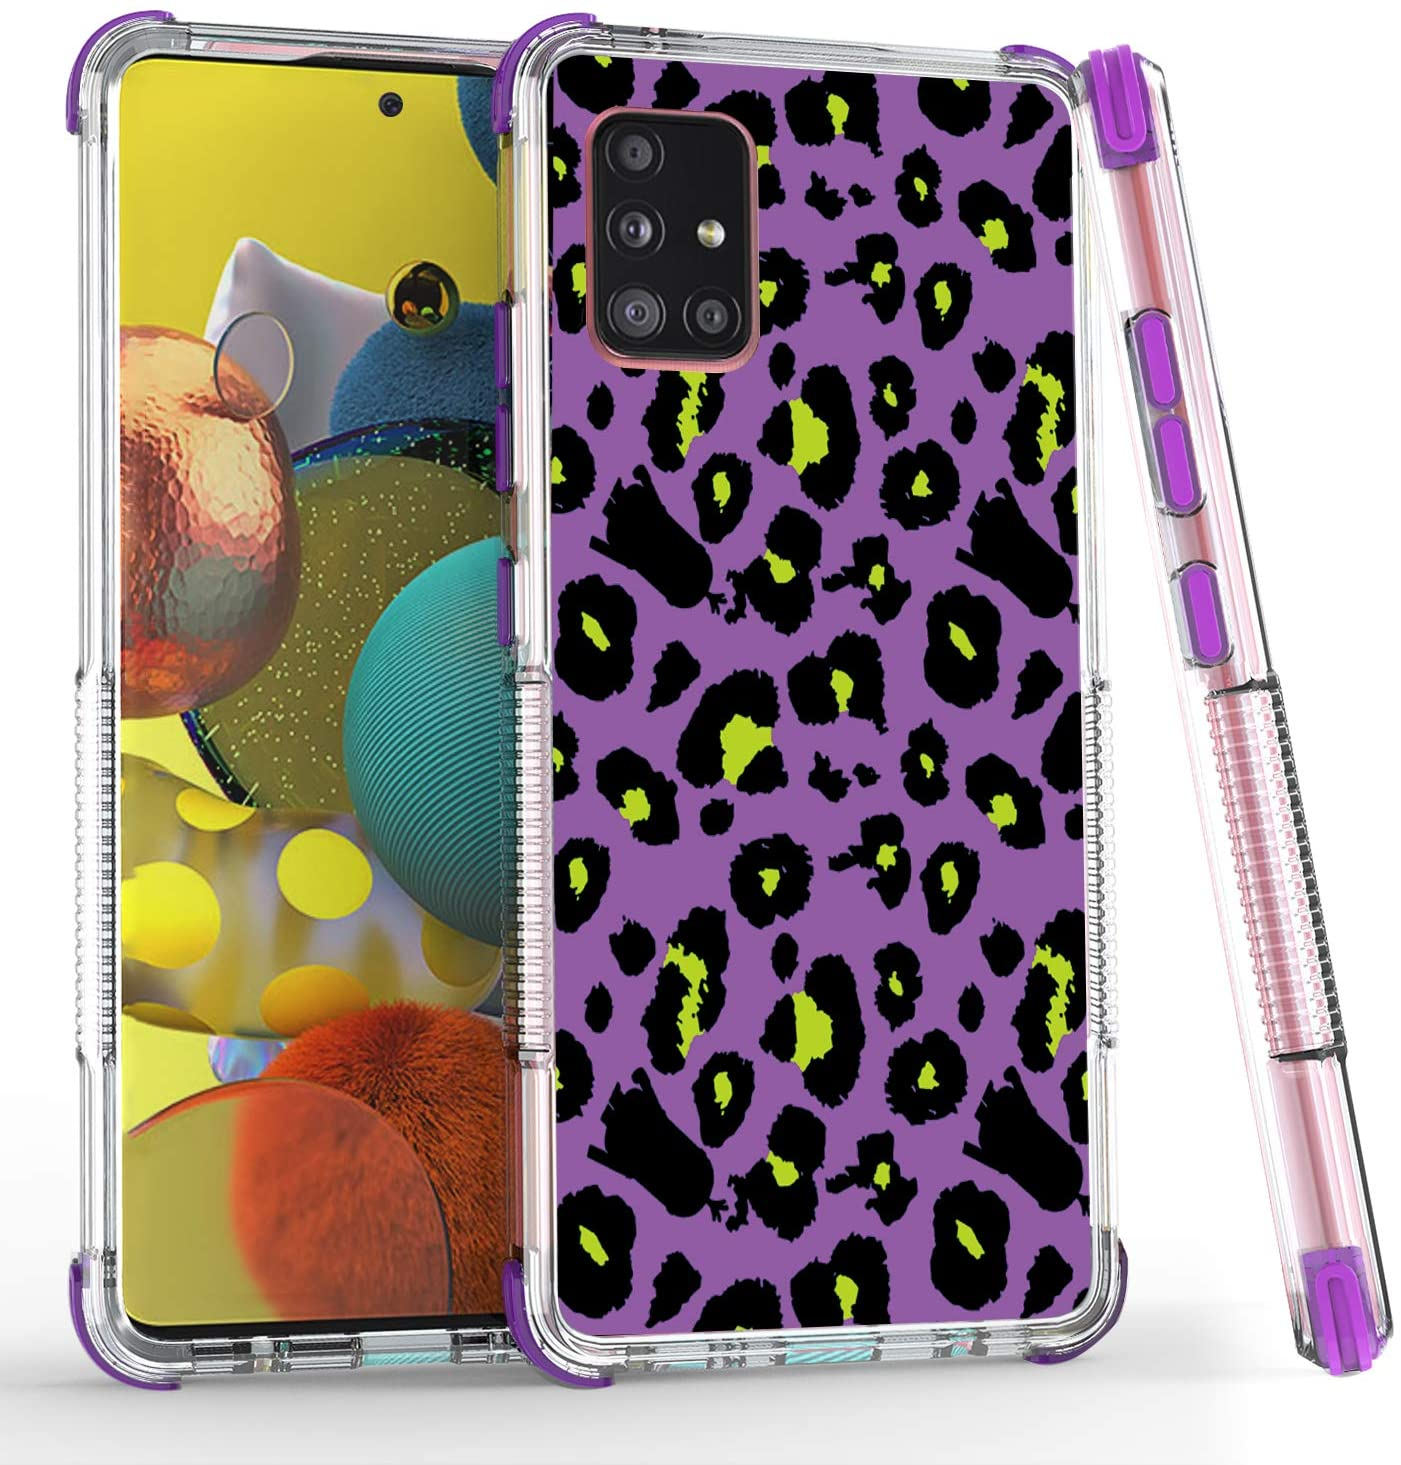 HUIQUAN for Samsung Galaxy A51 5G Phone Case, Hybrid Protective TPU Case, Shockproof Bumper Cover with Beautiful Design (Purple)